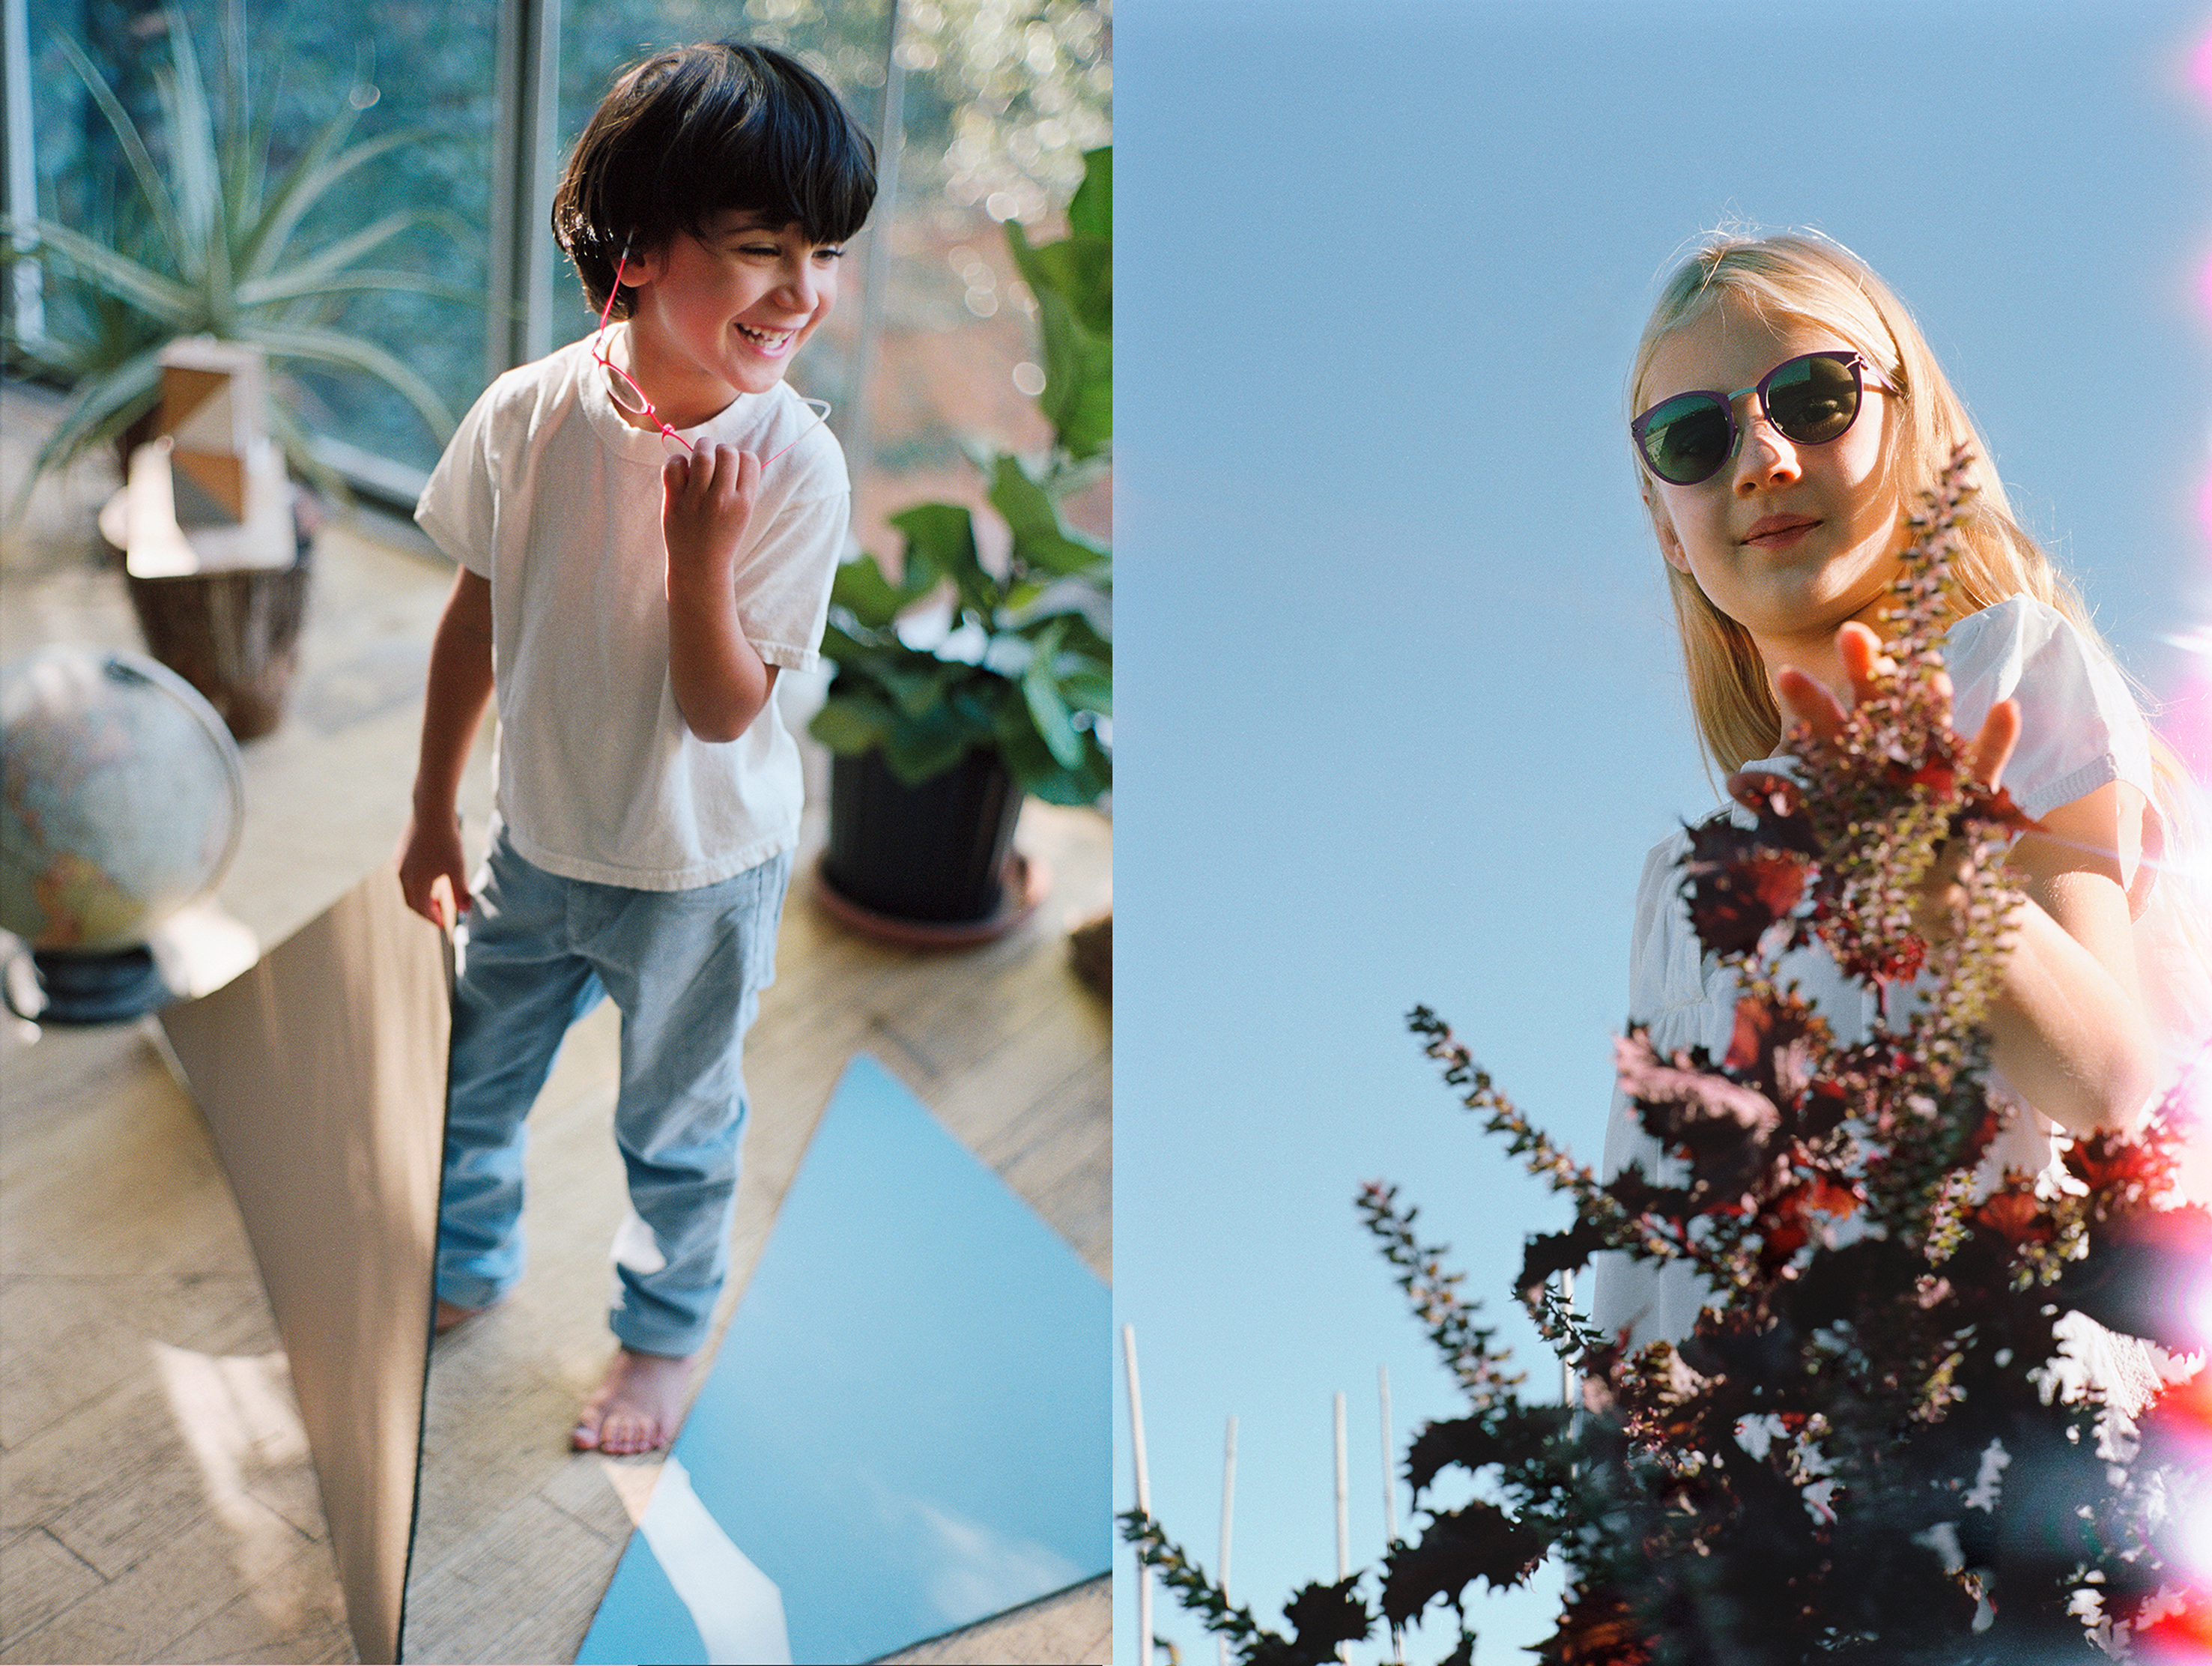 MYKITA FIRST, the new eyewear collection for children by MYKITA. Photo by Mark Borthwick.